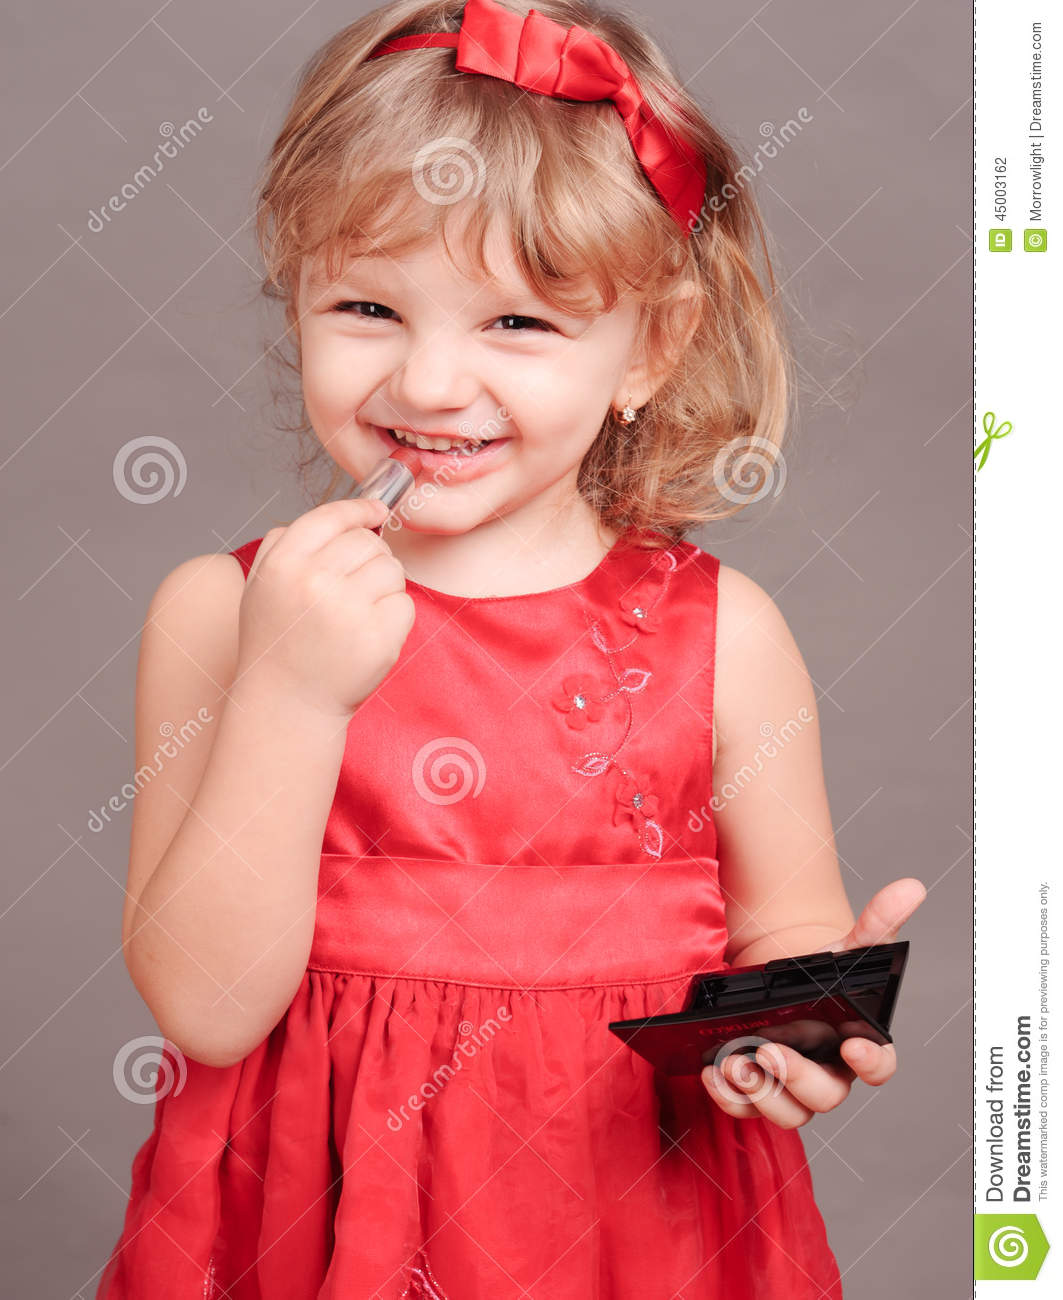 Cute Baby Girl Doing Makeup Stock Photo Image of little fashion